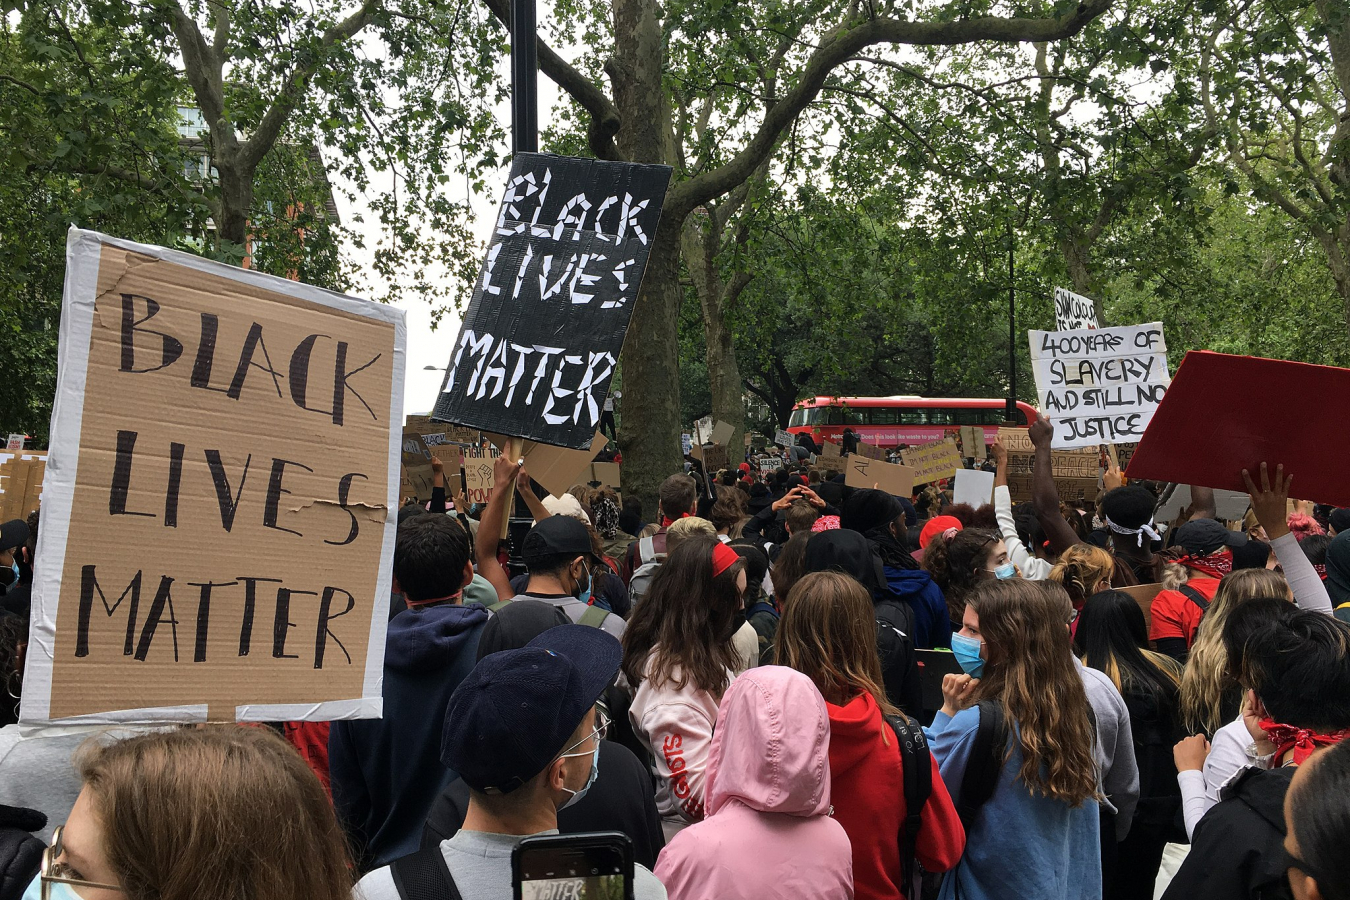 Black Lives Matter peaceful protest on 3 June 2020 from Hyde Park to Trafalgar Square.